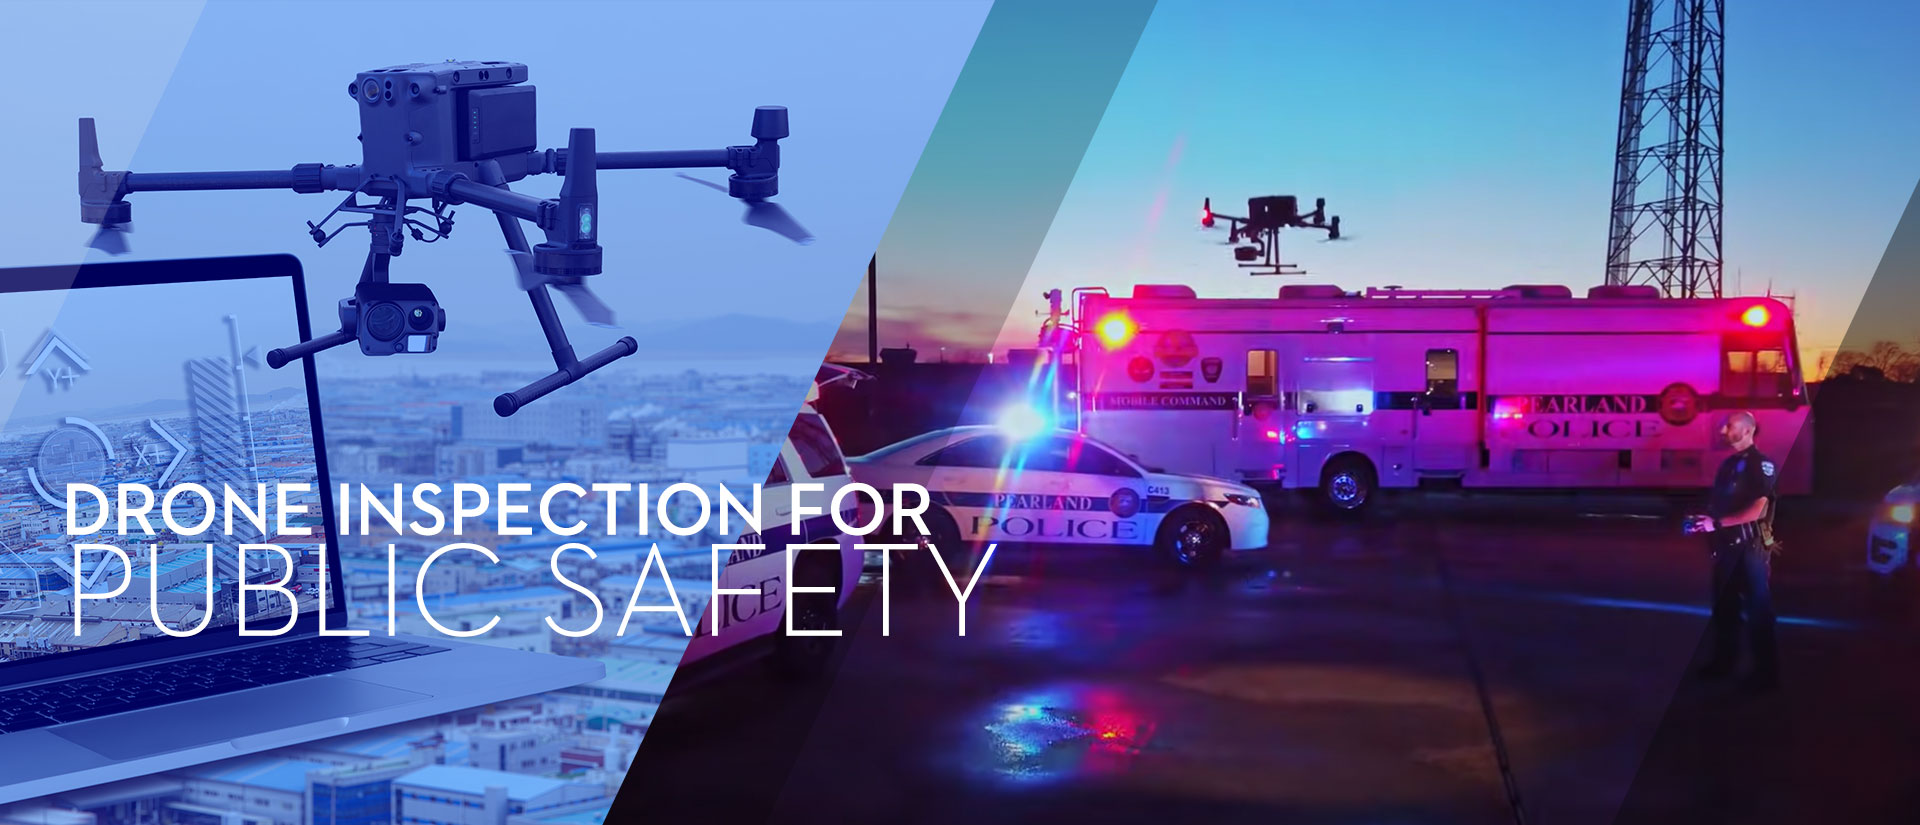 Blog-Drone-Inspection-Public Safety